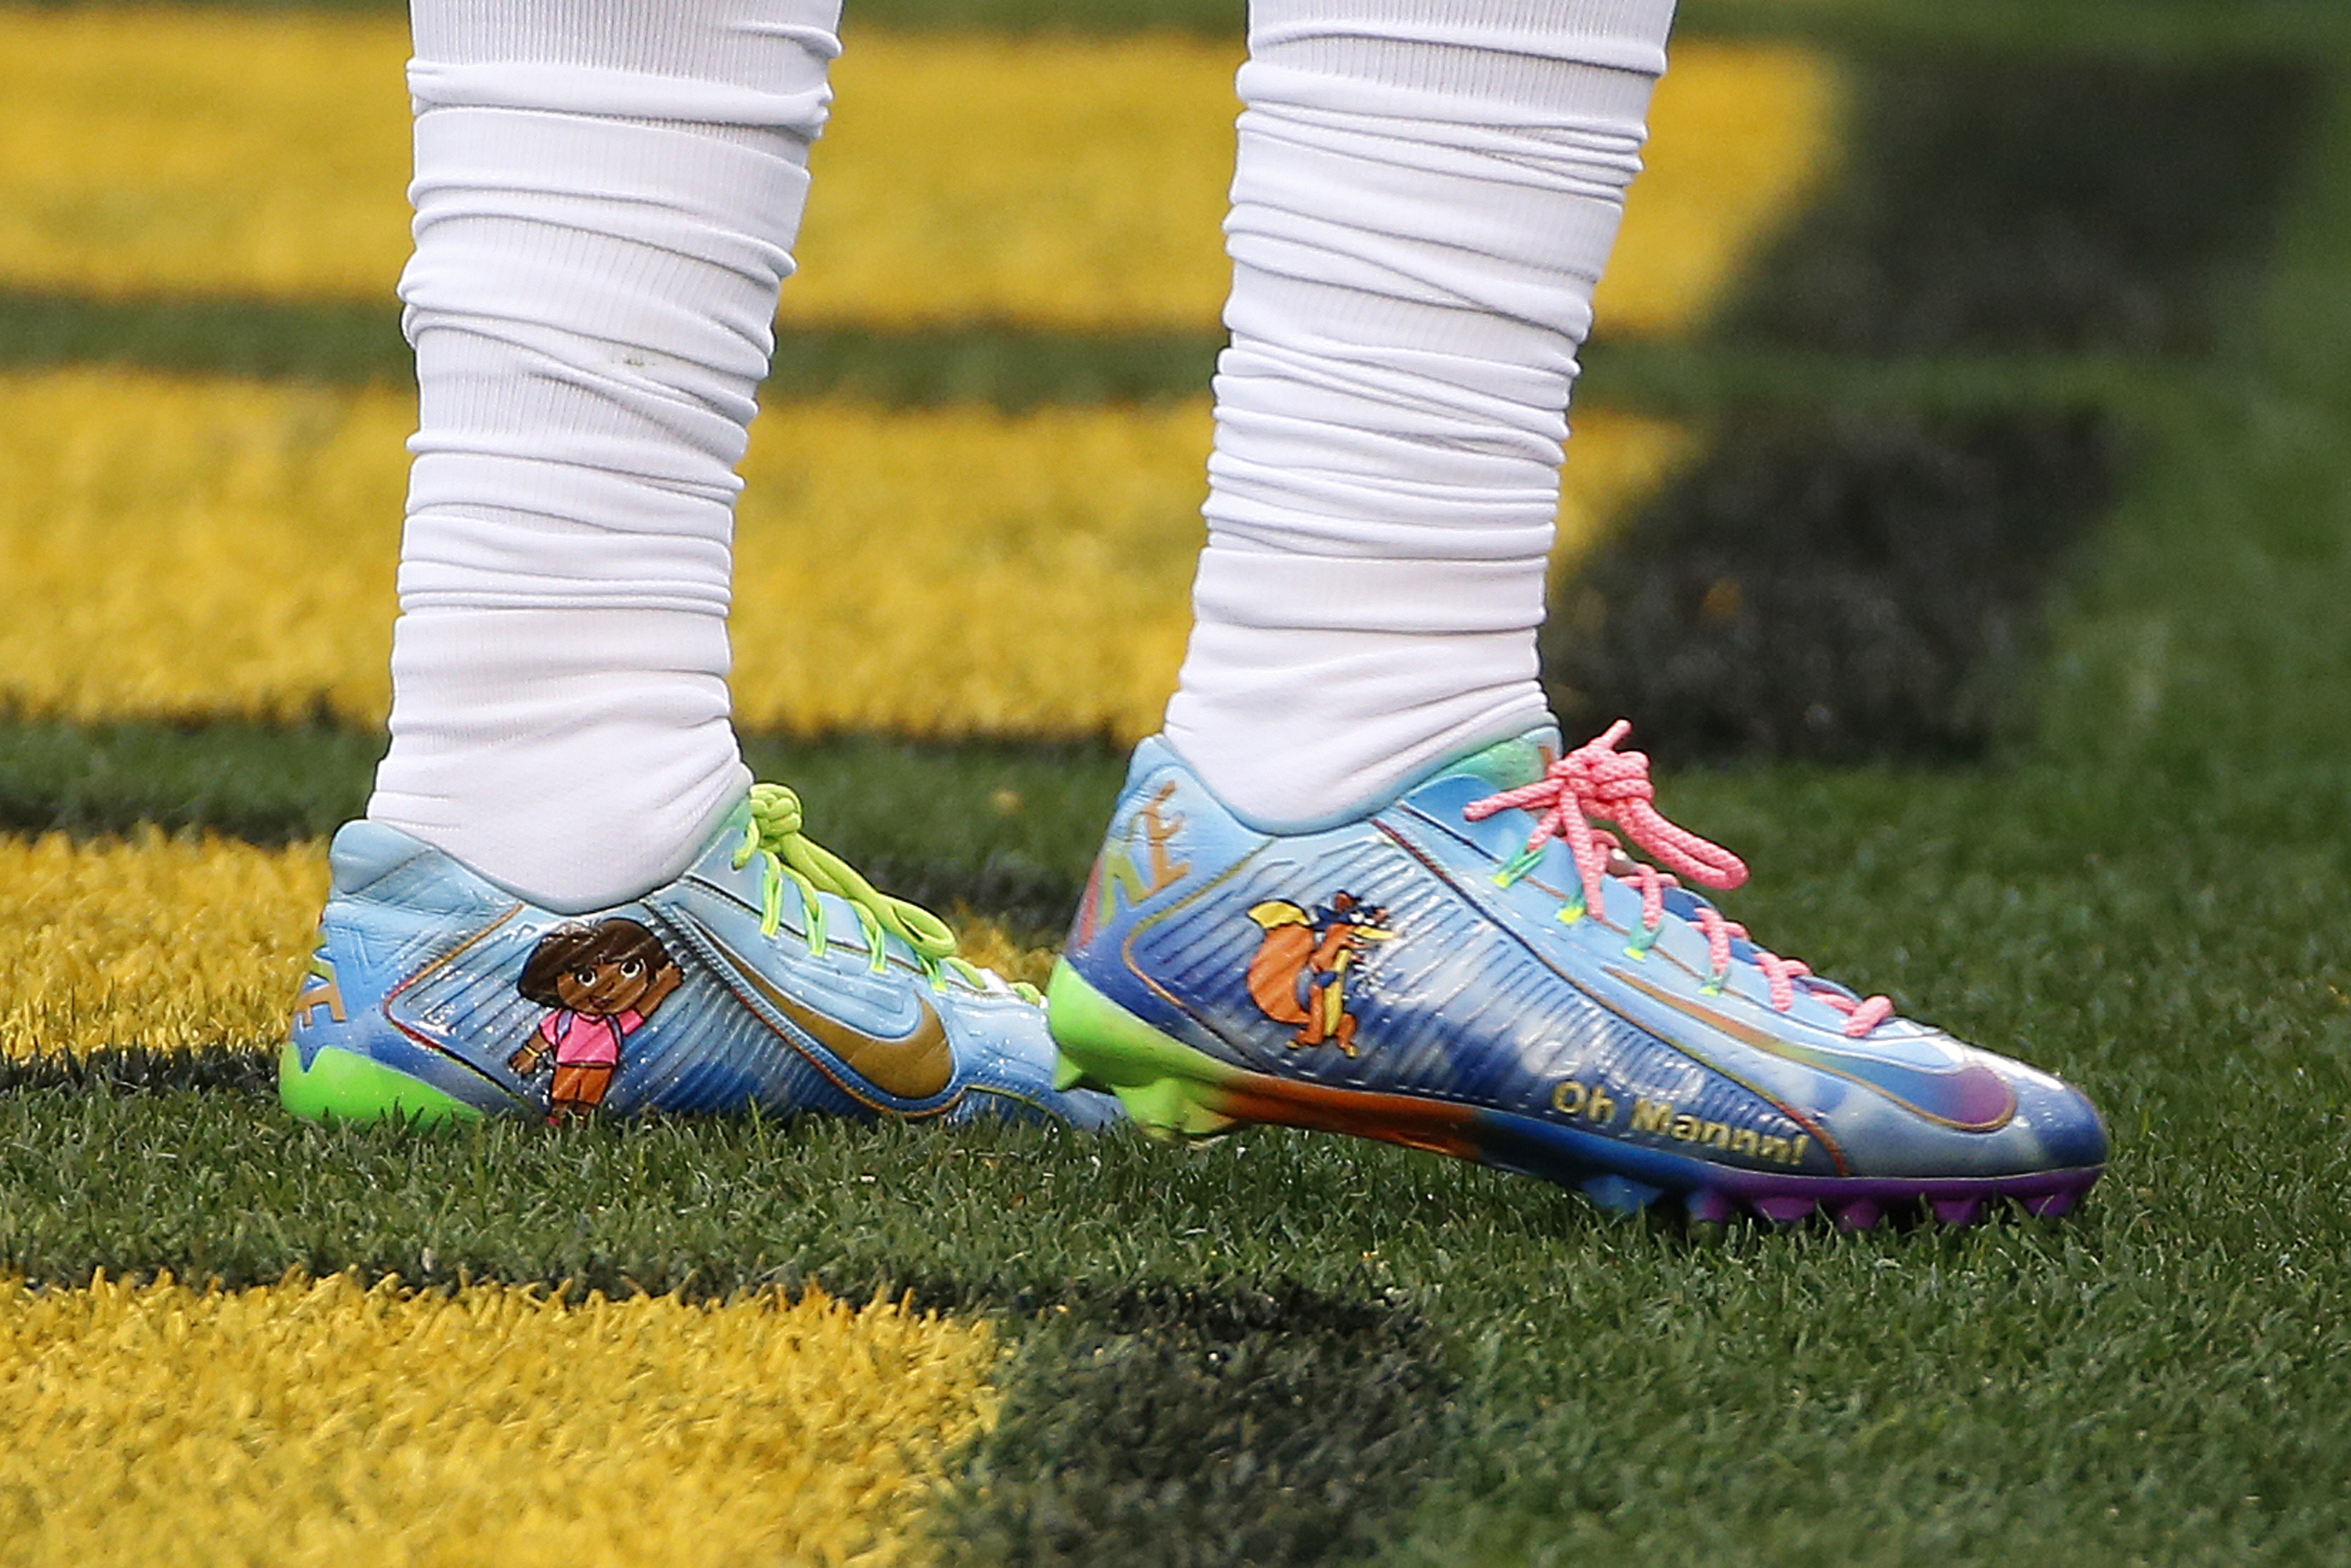 0a12bf31ed5a New York Giants wide receiver Odell Beckham Jr. wears cleats supporting the  Make-A-Wish Foundation during warm-ups before a game against the Pittsburgh  ...